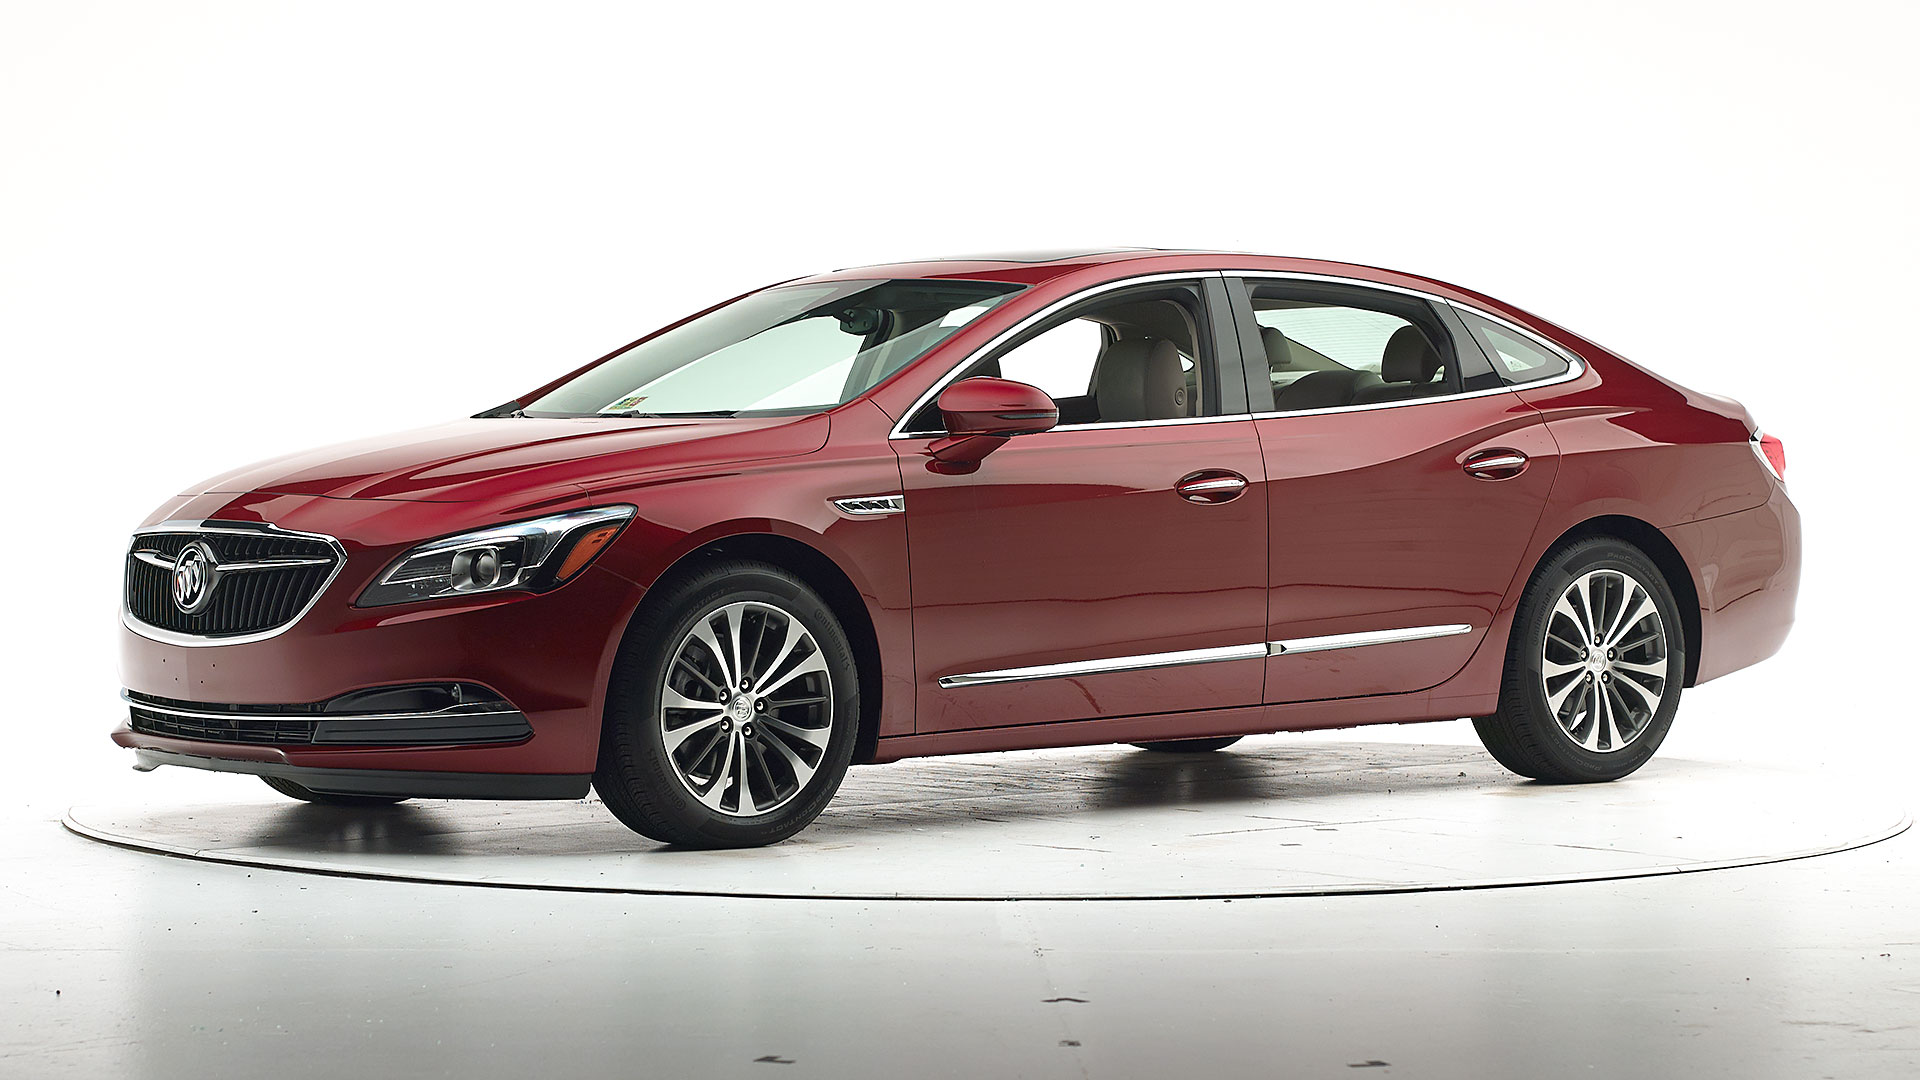 2018 Buick LaCrosse 4-door sedan